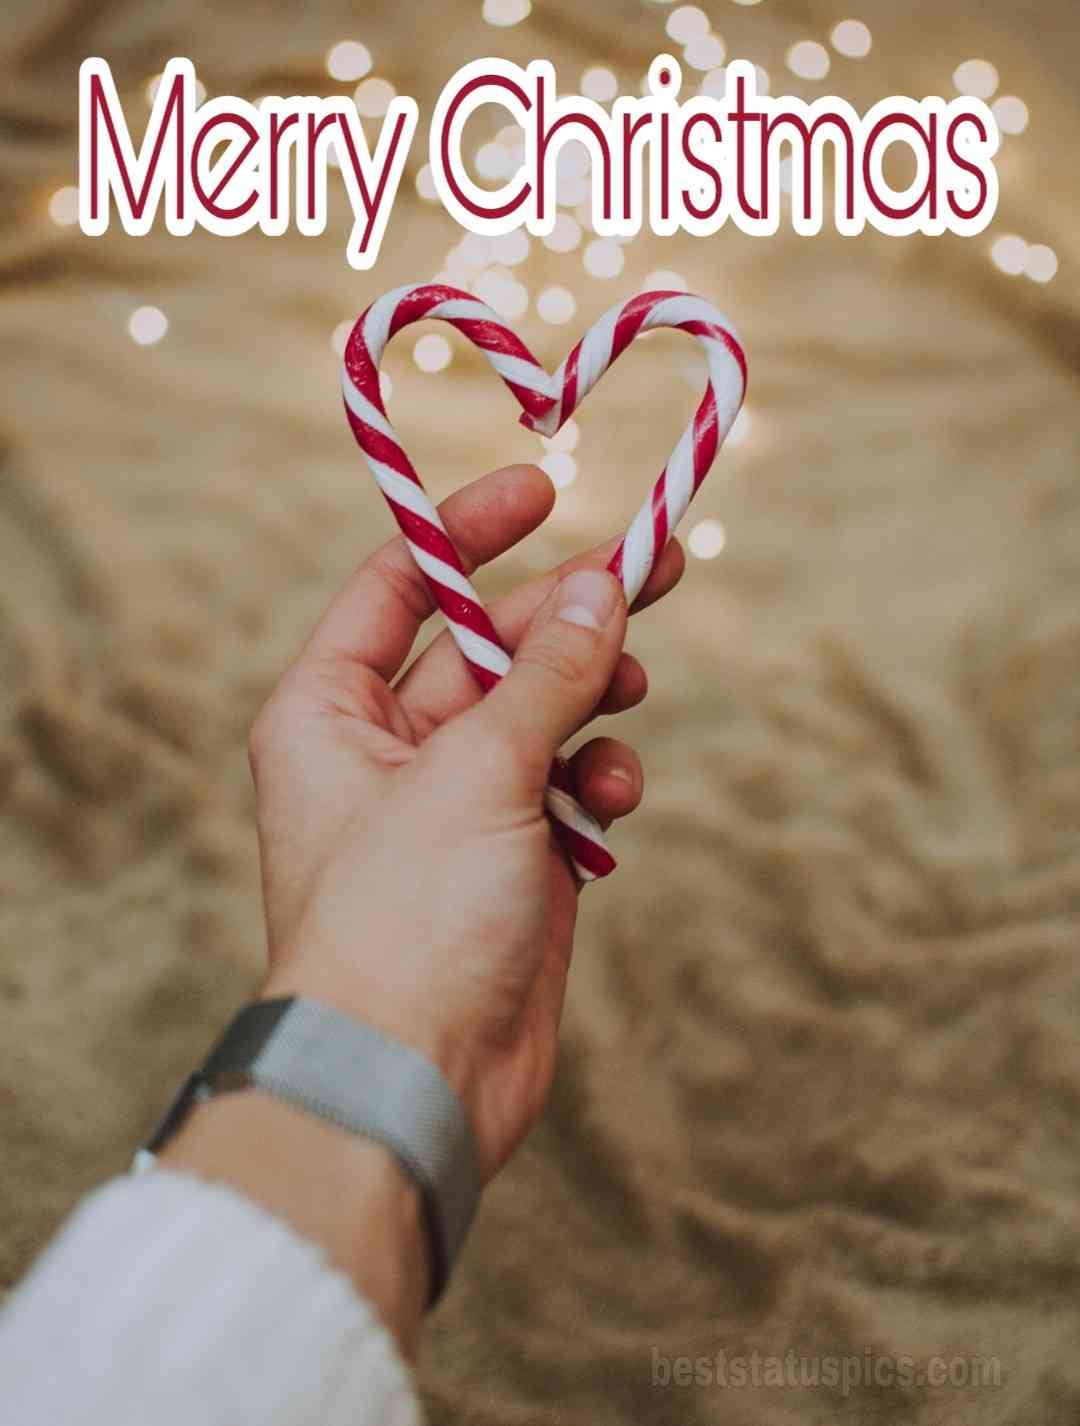 Merry Christmas wishes 2019 with Love